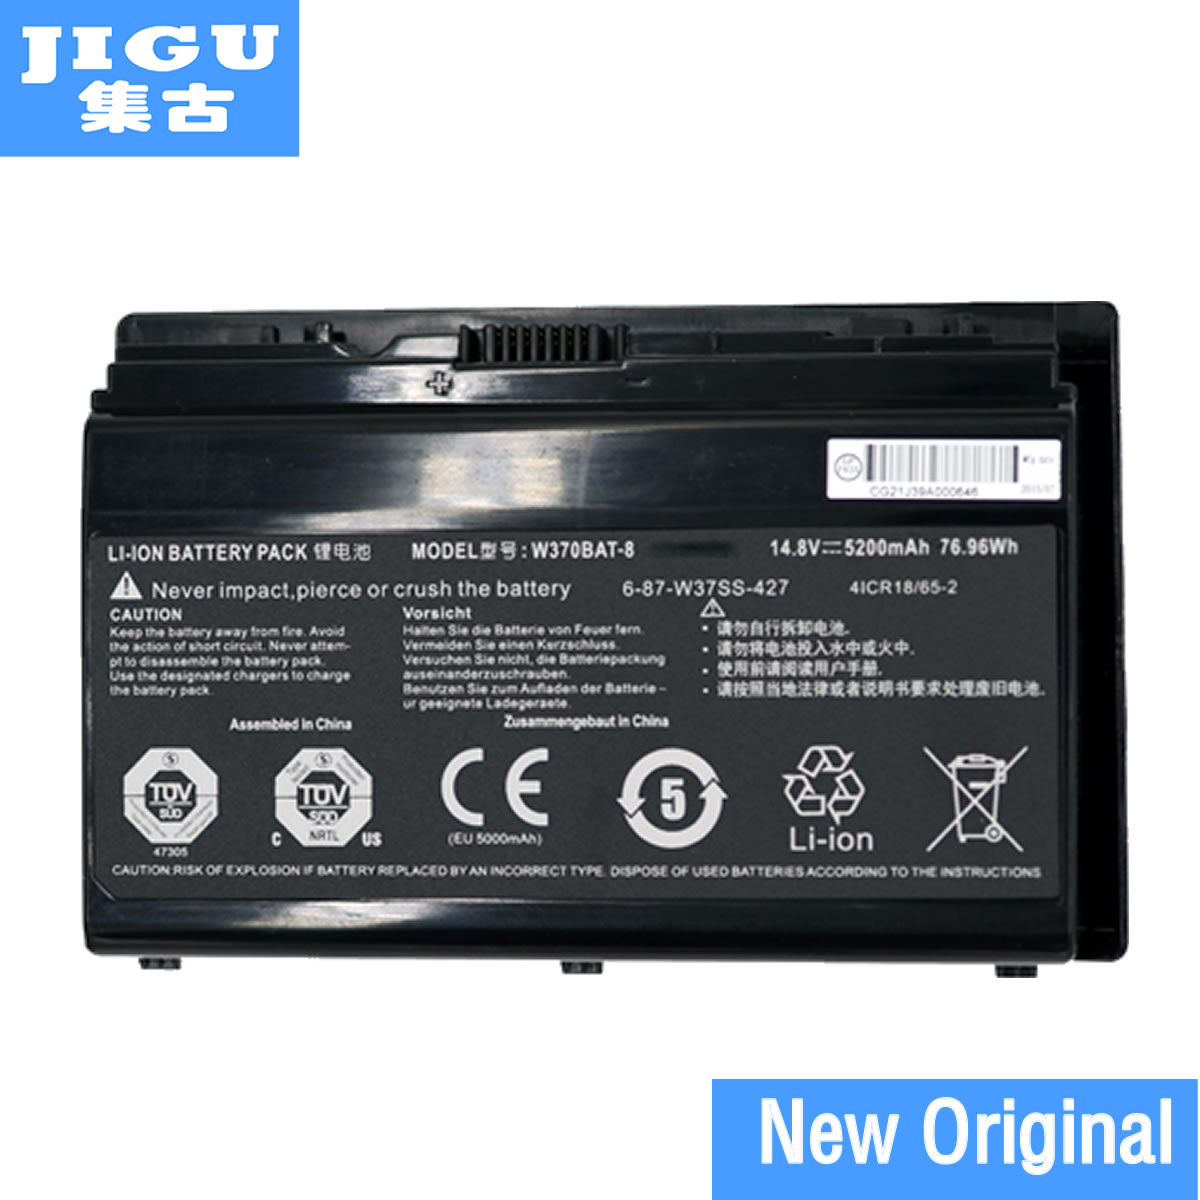 JIGU Laptop Battery 6-87-W370S-427 6-87-W370S-4271 6-87-W37ES-427 6-87-W37SS-427 W370BAT-3 W370BAT-8 FOR CLEVO K590S K790S origianl clevo 6 87 n350s 4d7 6 87 n350s 4d8 n350bat 6 n350bat 9 laptop battery